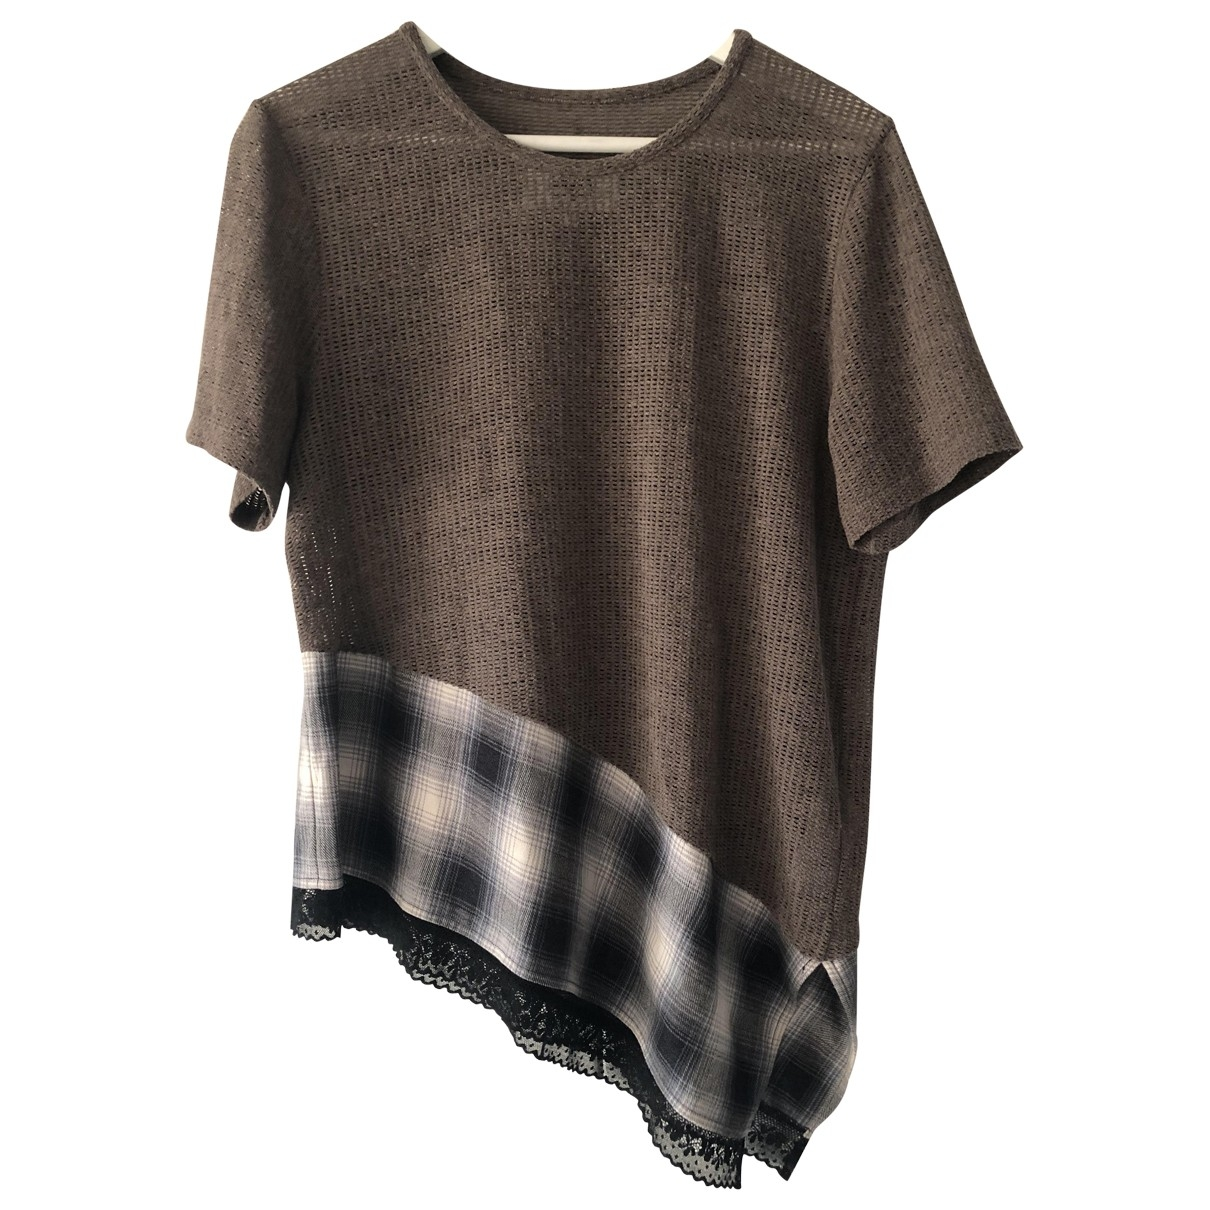 Mm6 \N Brown Cotton  top for Women M International